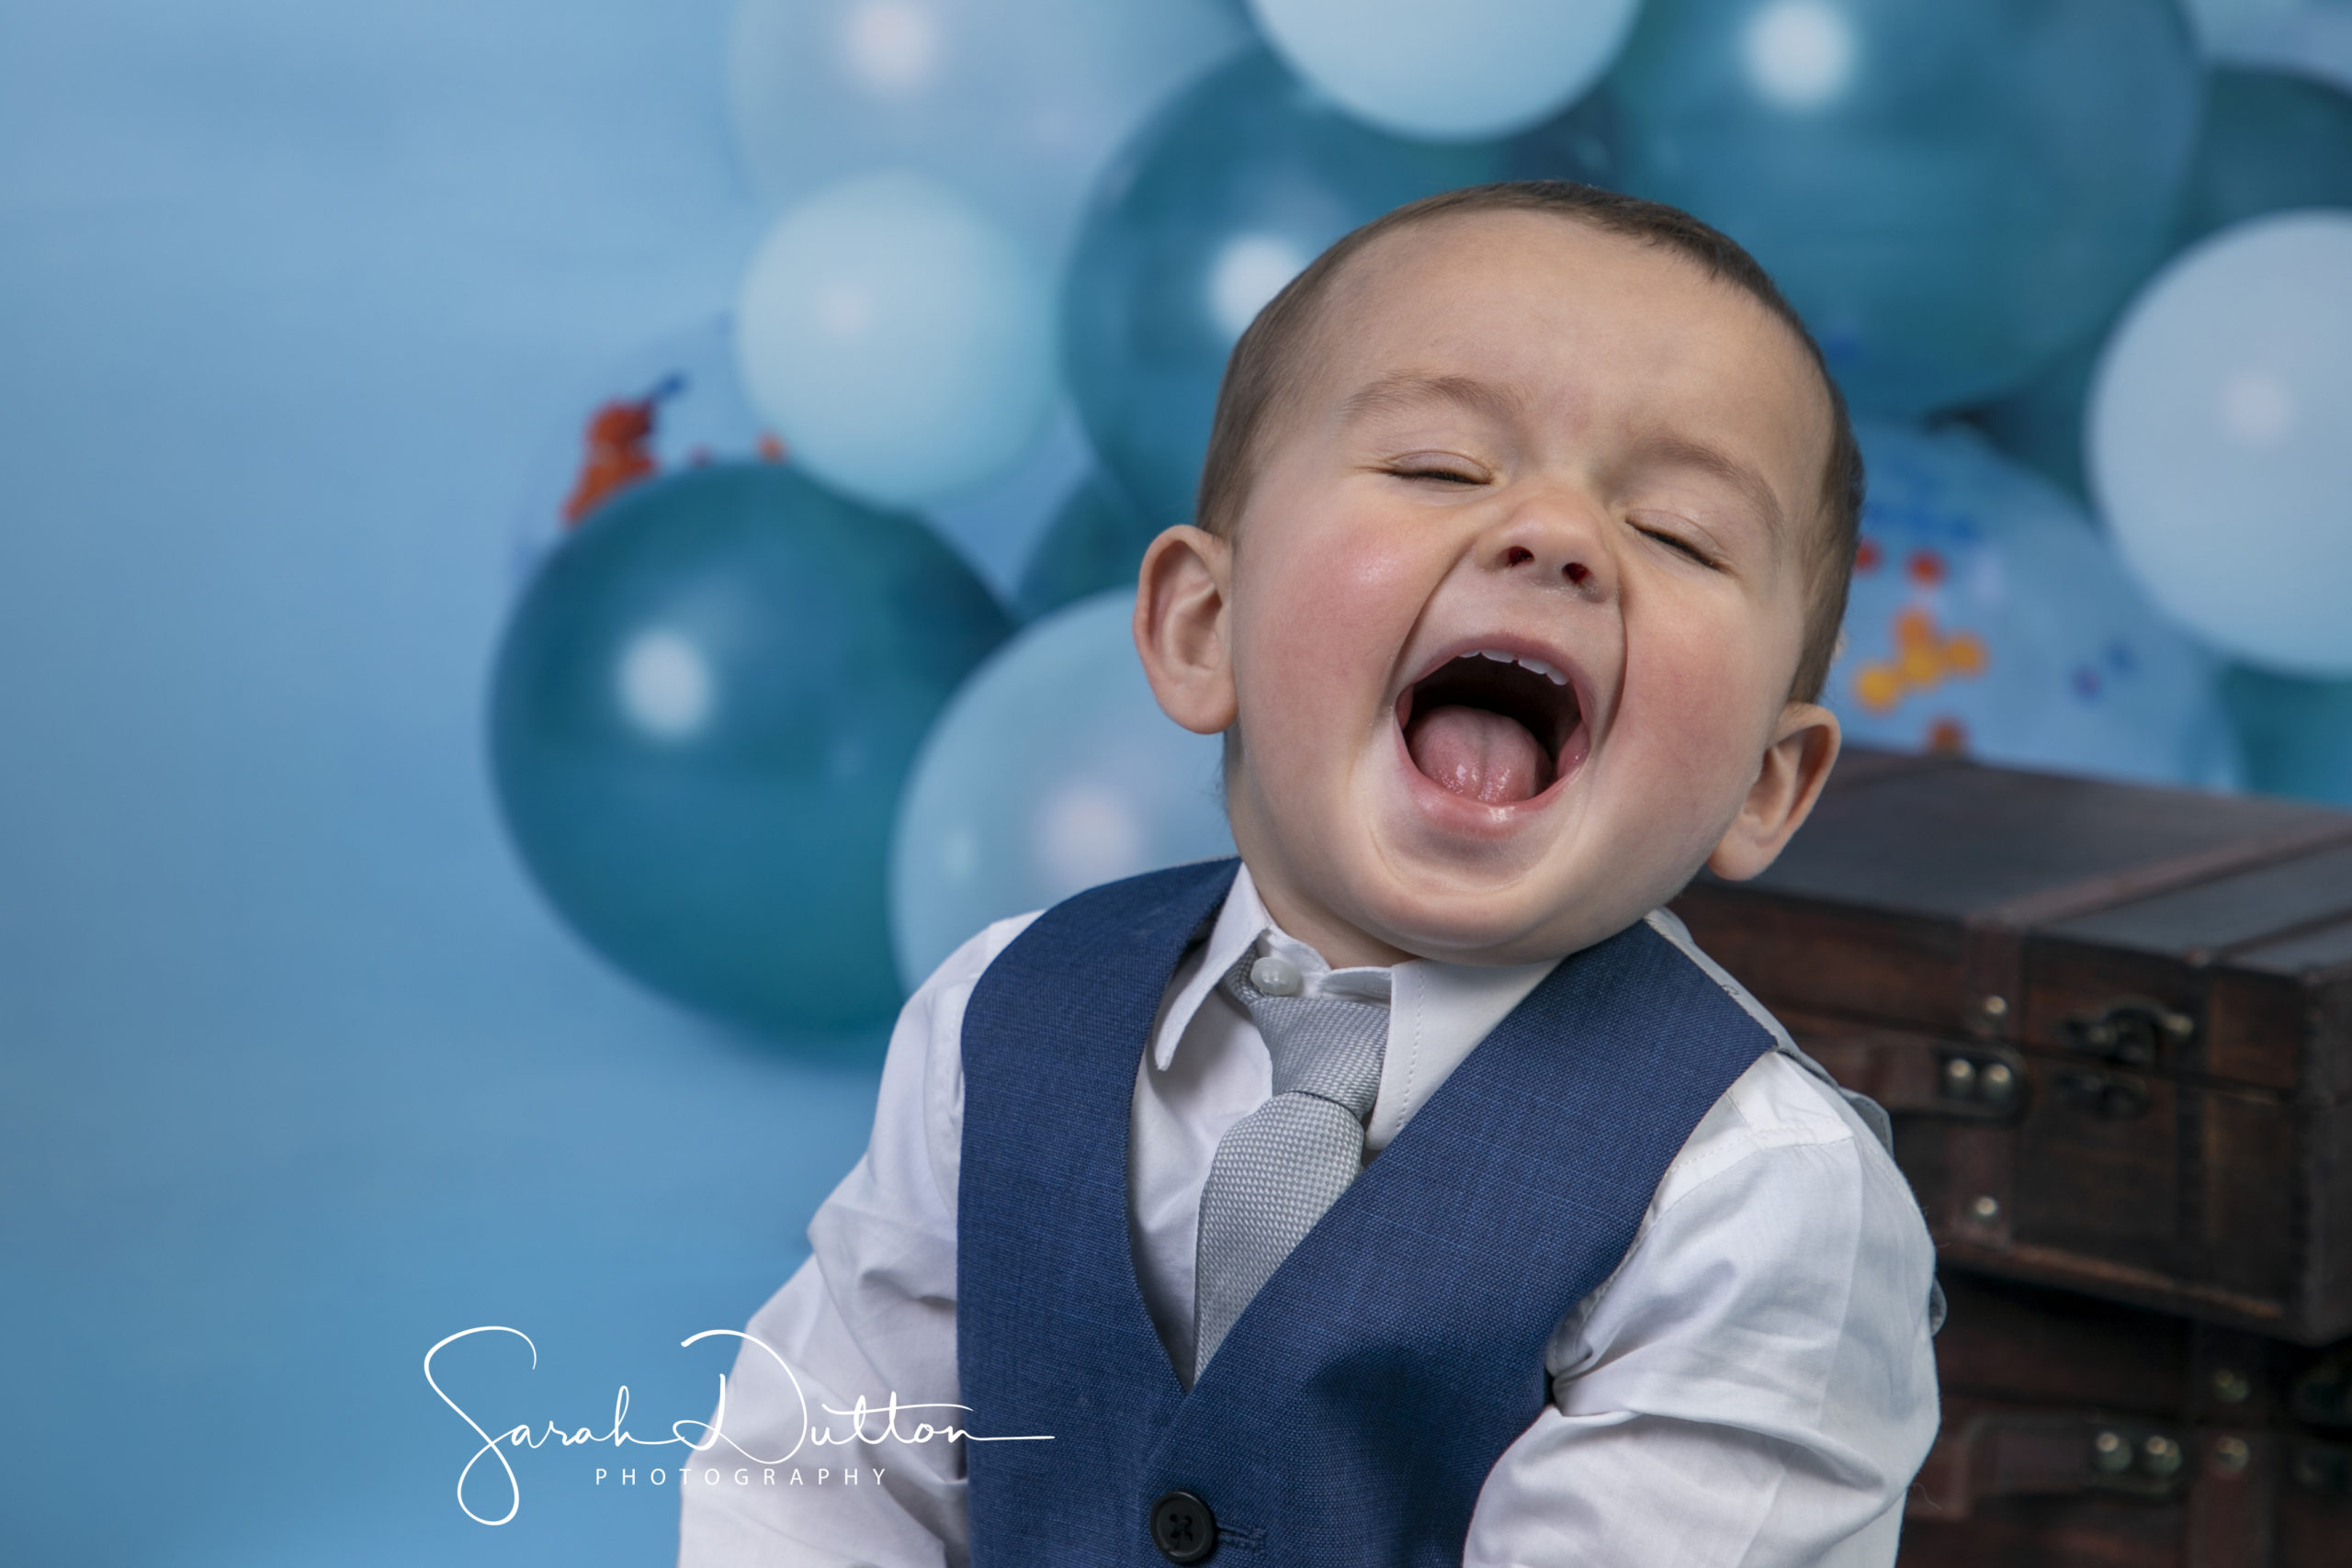 Cake Smash Baby photography portrait taken by photographer Sarah Dutton In her studio in Whitchurch Hampshire